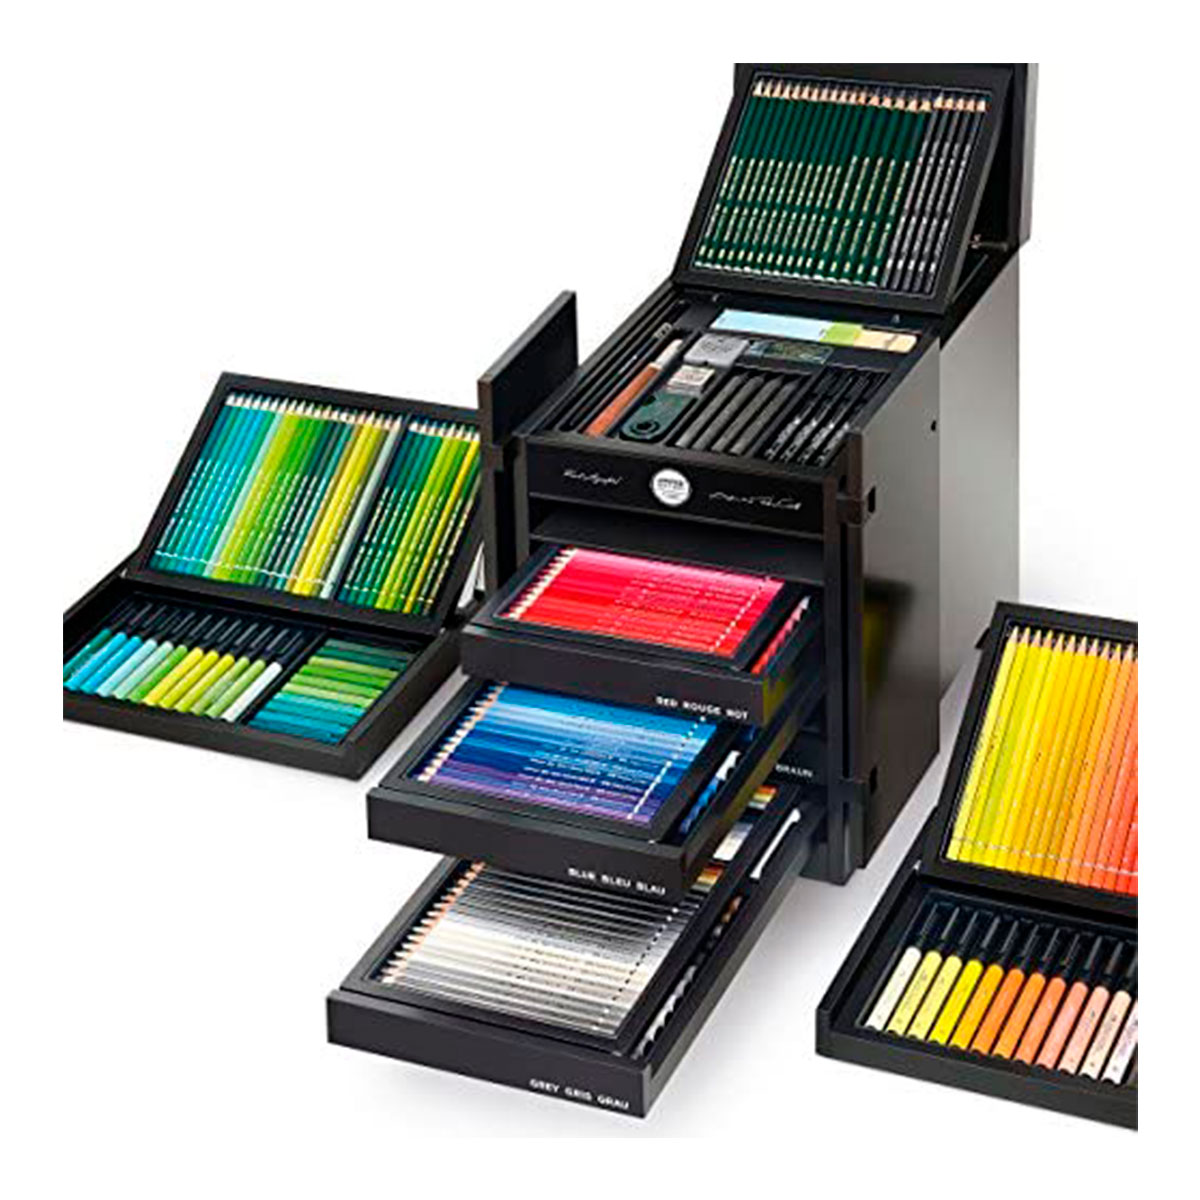 110051 FABER-CASTELL                                                | VALIJA COLECCION ART & GRAPHIC KARLBOX